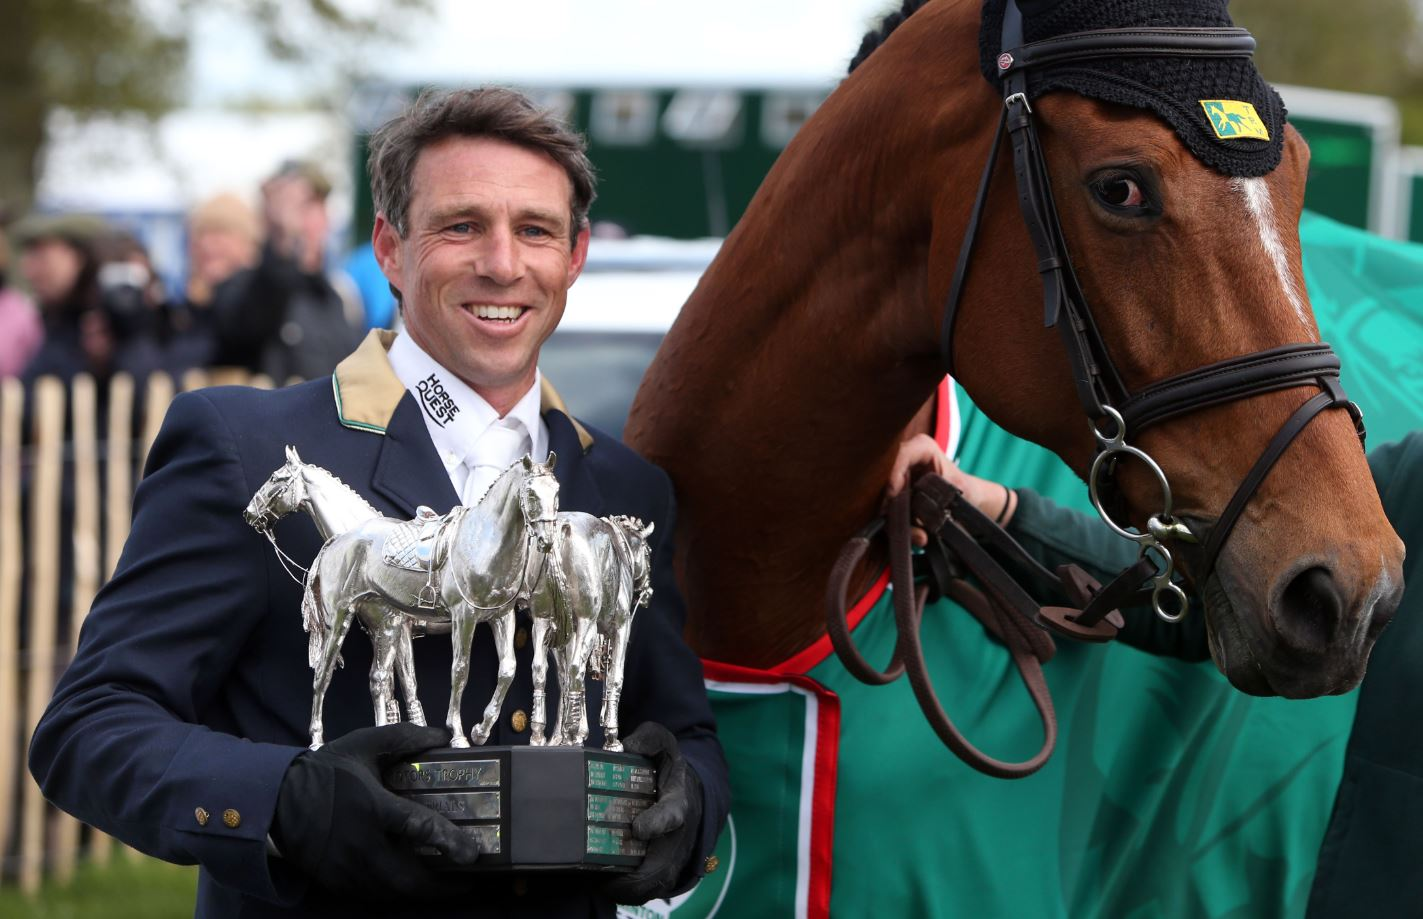 Australia's Sam Griffiths and Paulank Brockagh celebrates after winning the Badminton Horse Trials, at Badminton, England, Sunday, May 11, 2014.